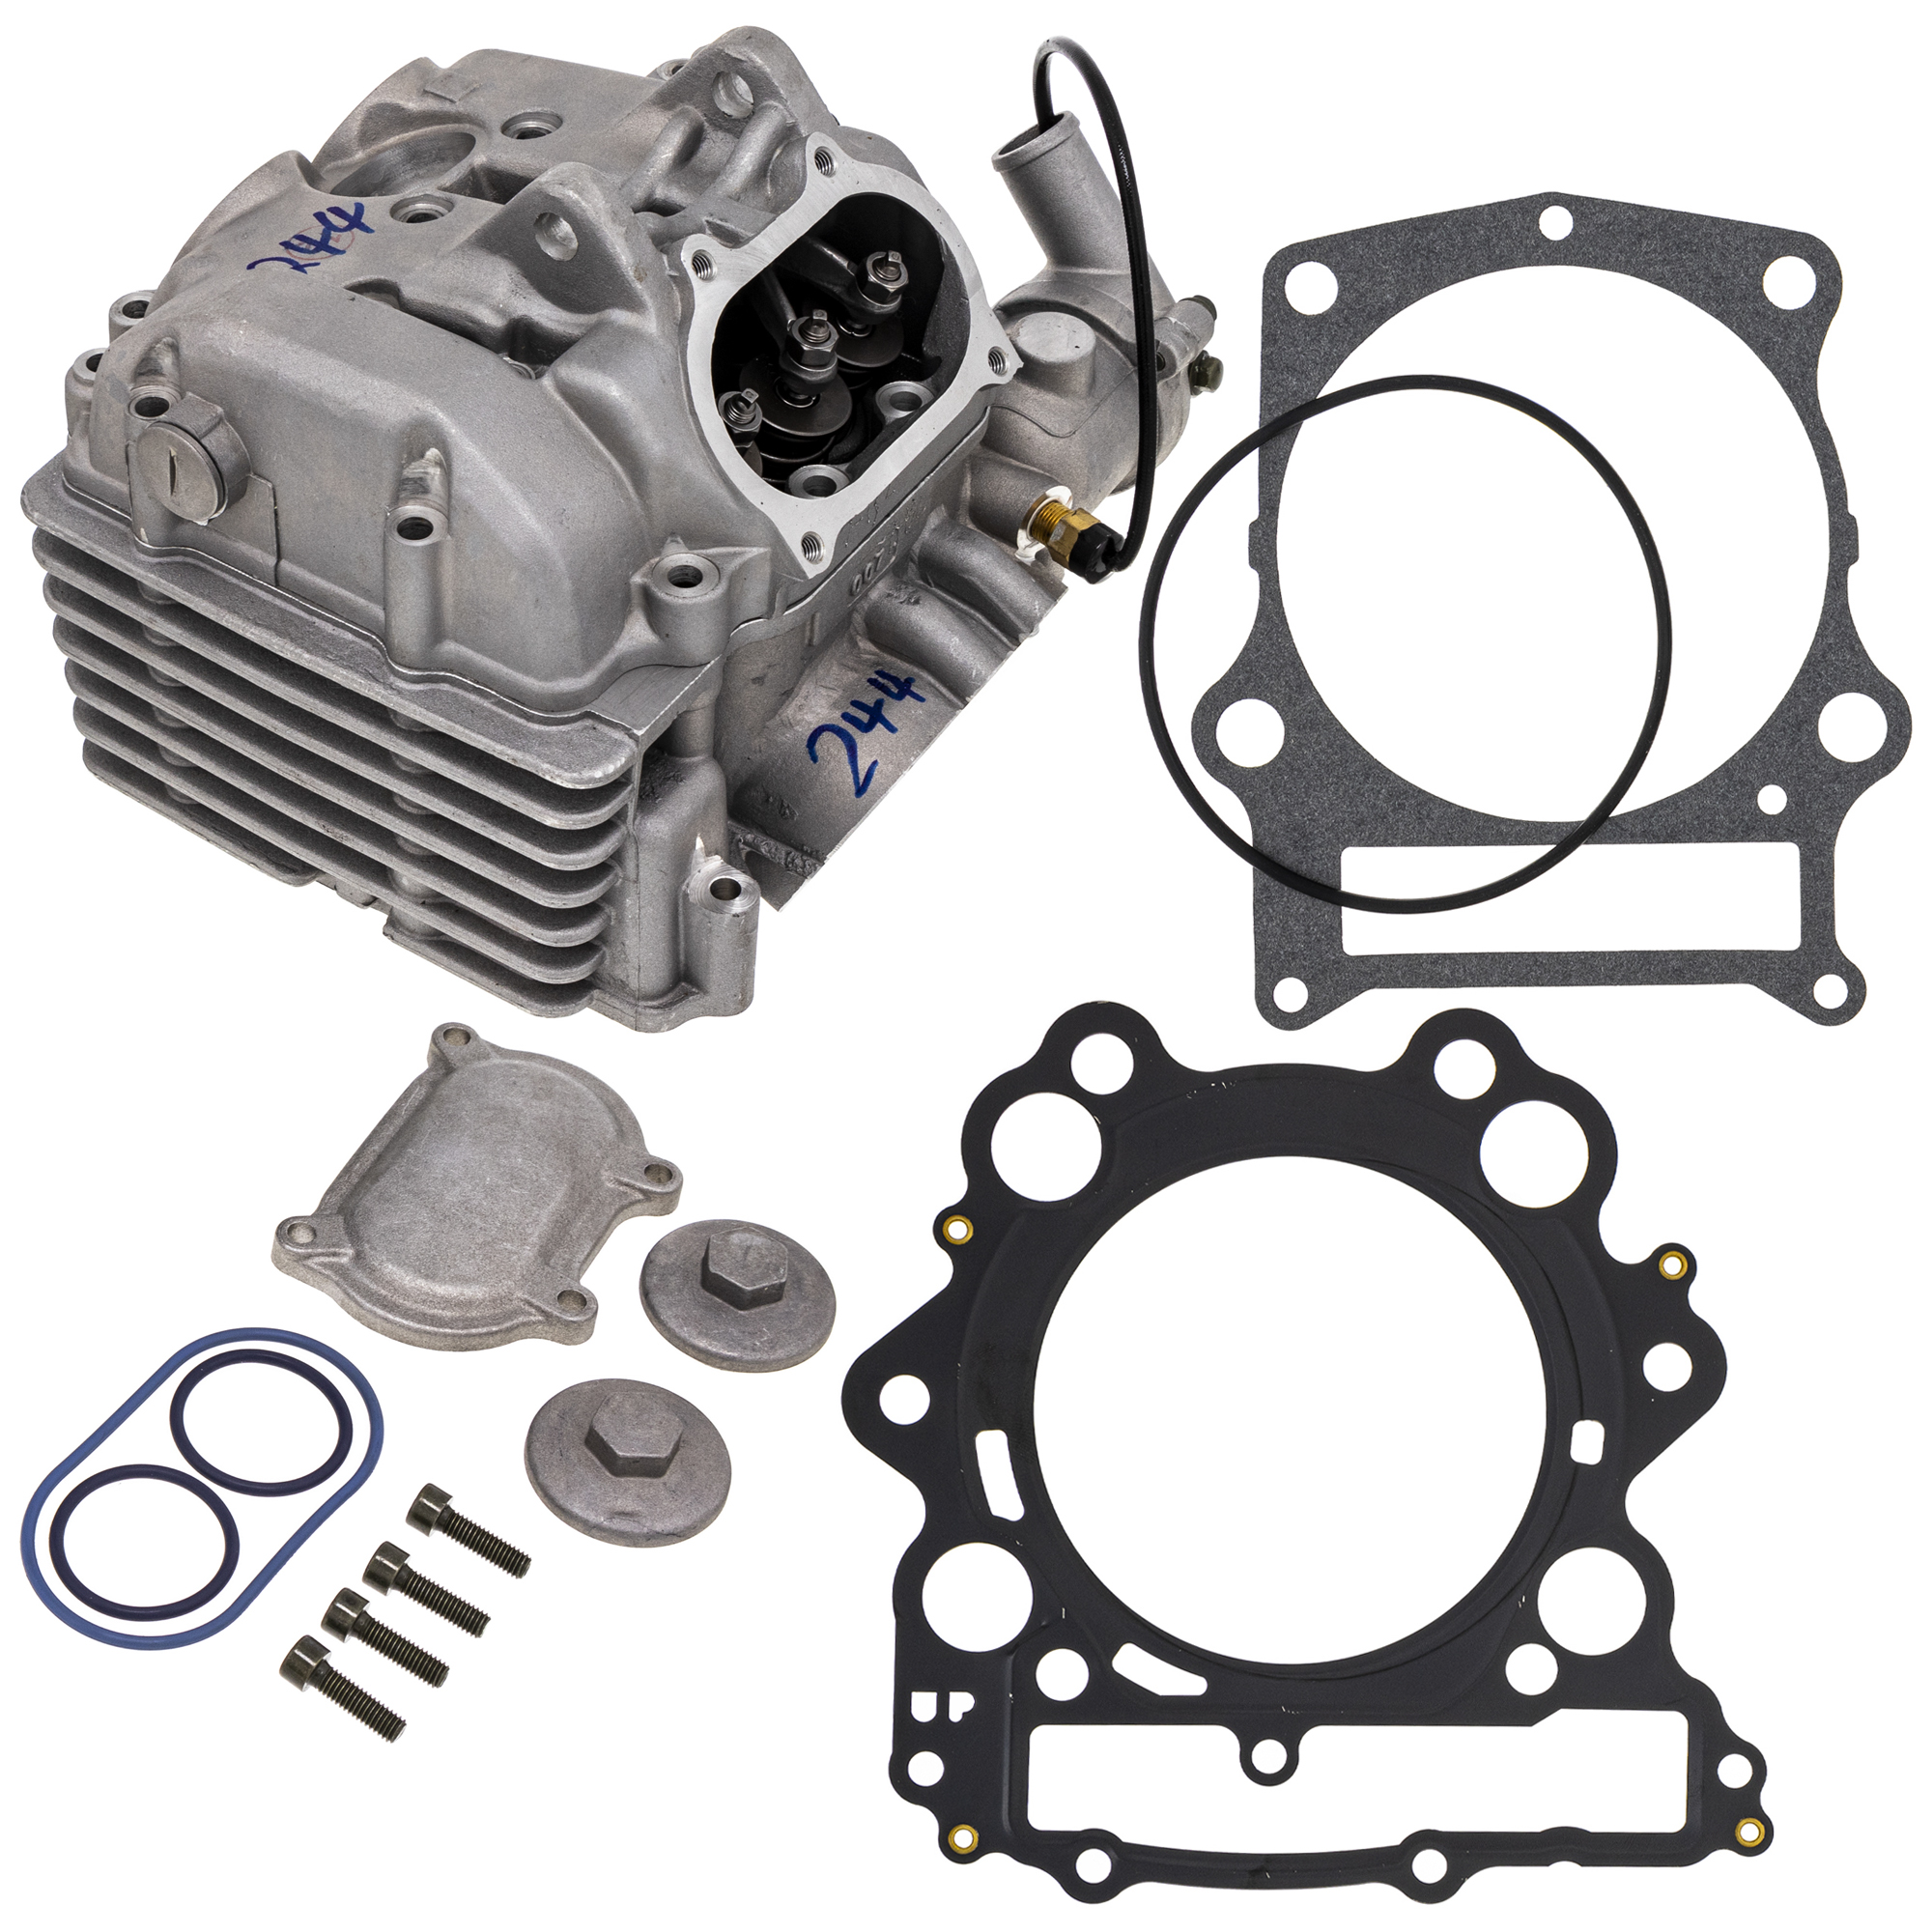 Details About Niche Cylinder Head Assembly Gasket Kit 2002 2008 Yamaha Grizzly Rhino 660